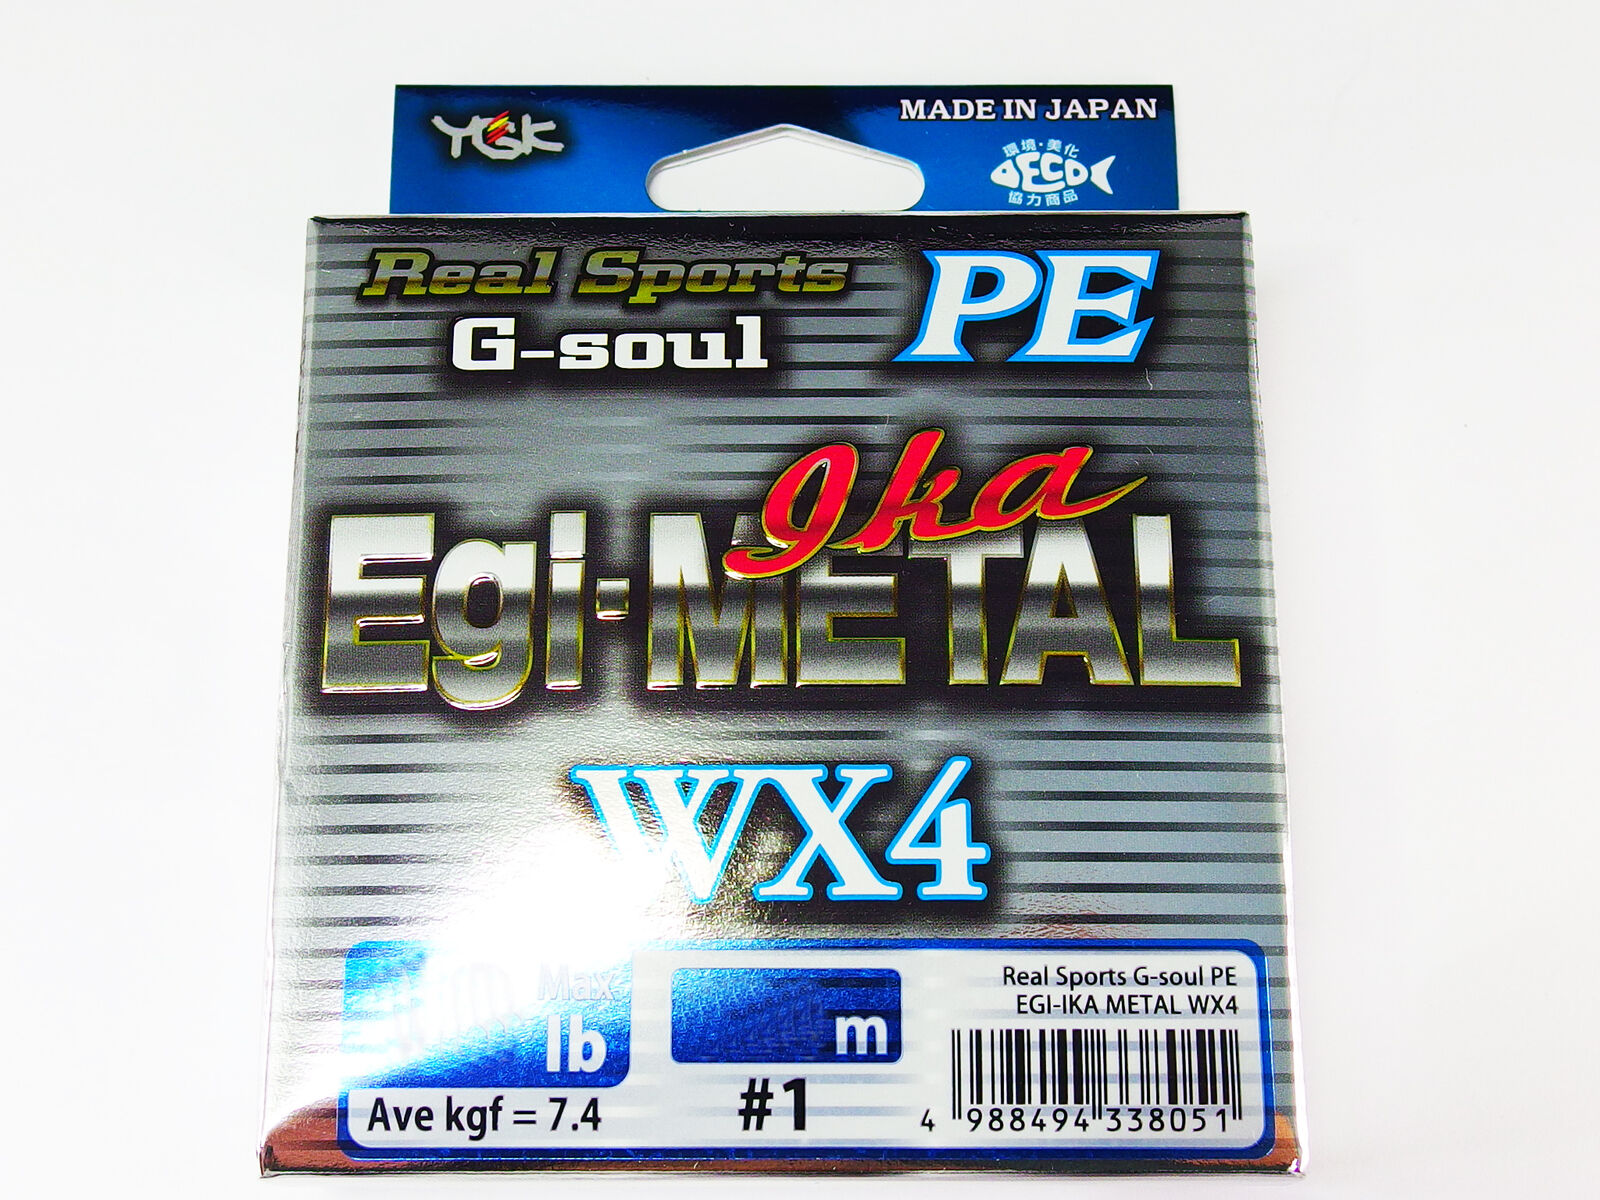 YGK - Real Sports G-SOUL PE EGI-IKA  METAL WX4 120m lb  for your style of play at the cheapest prices